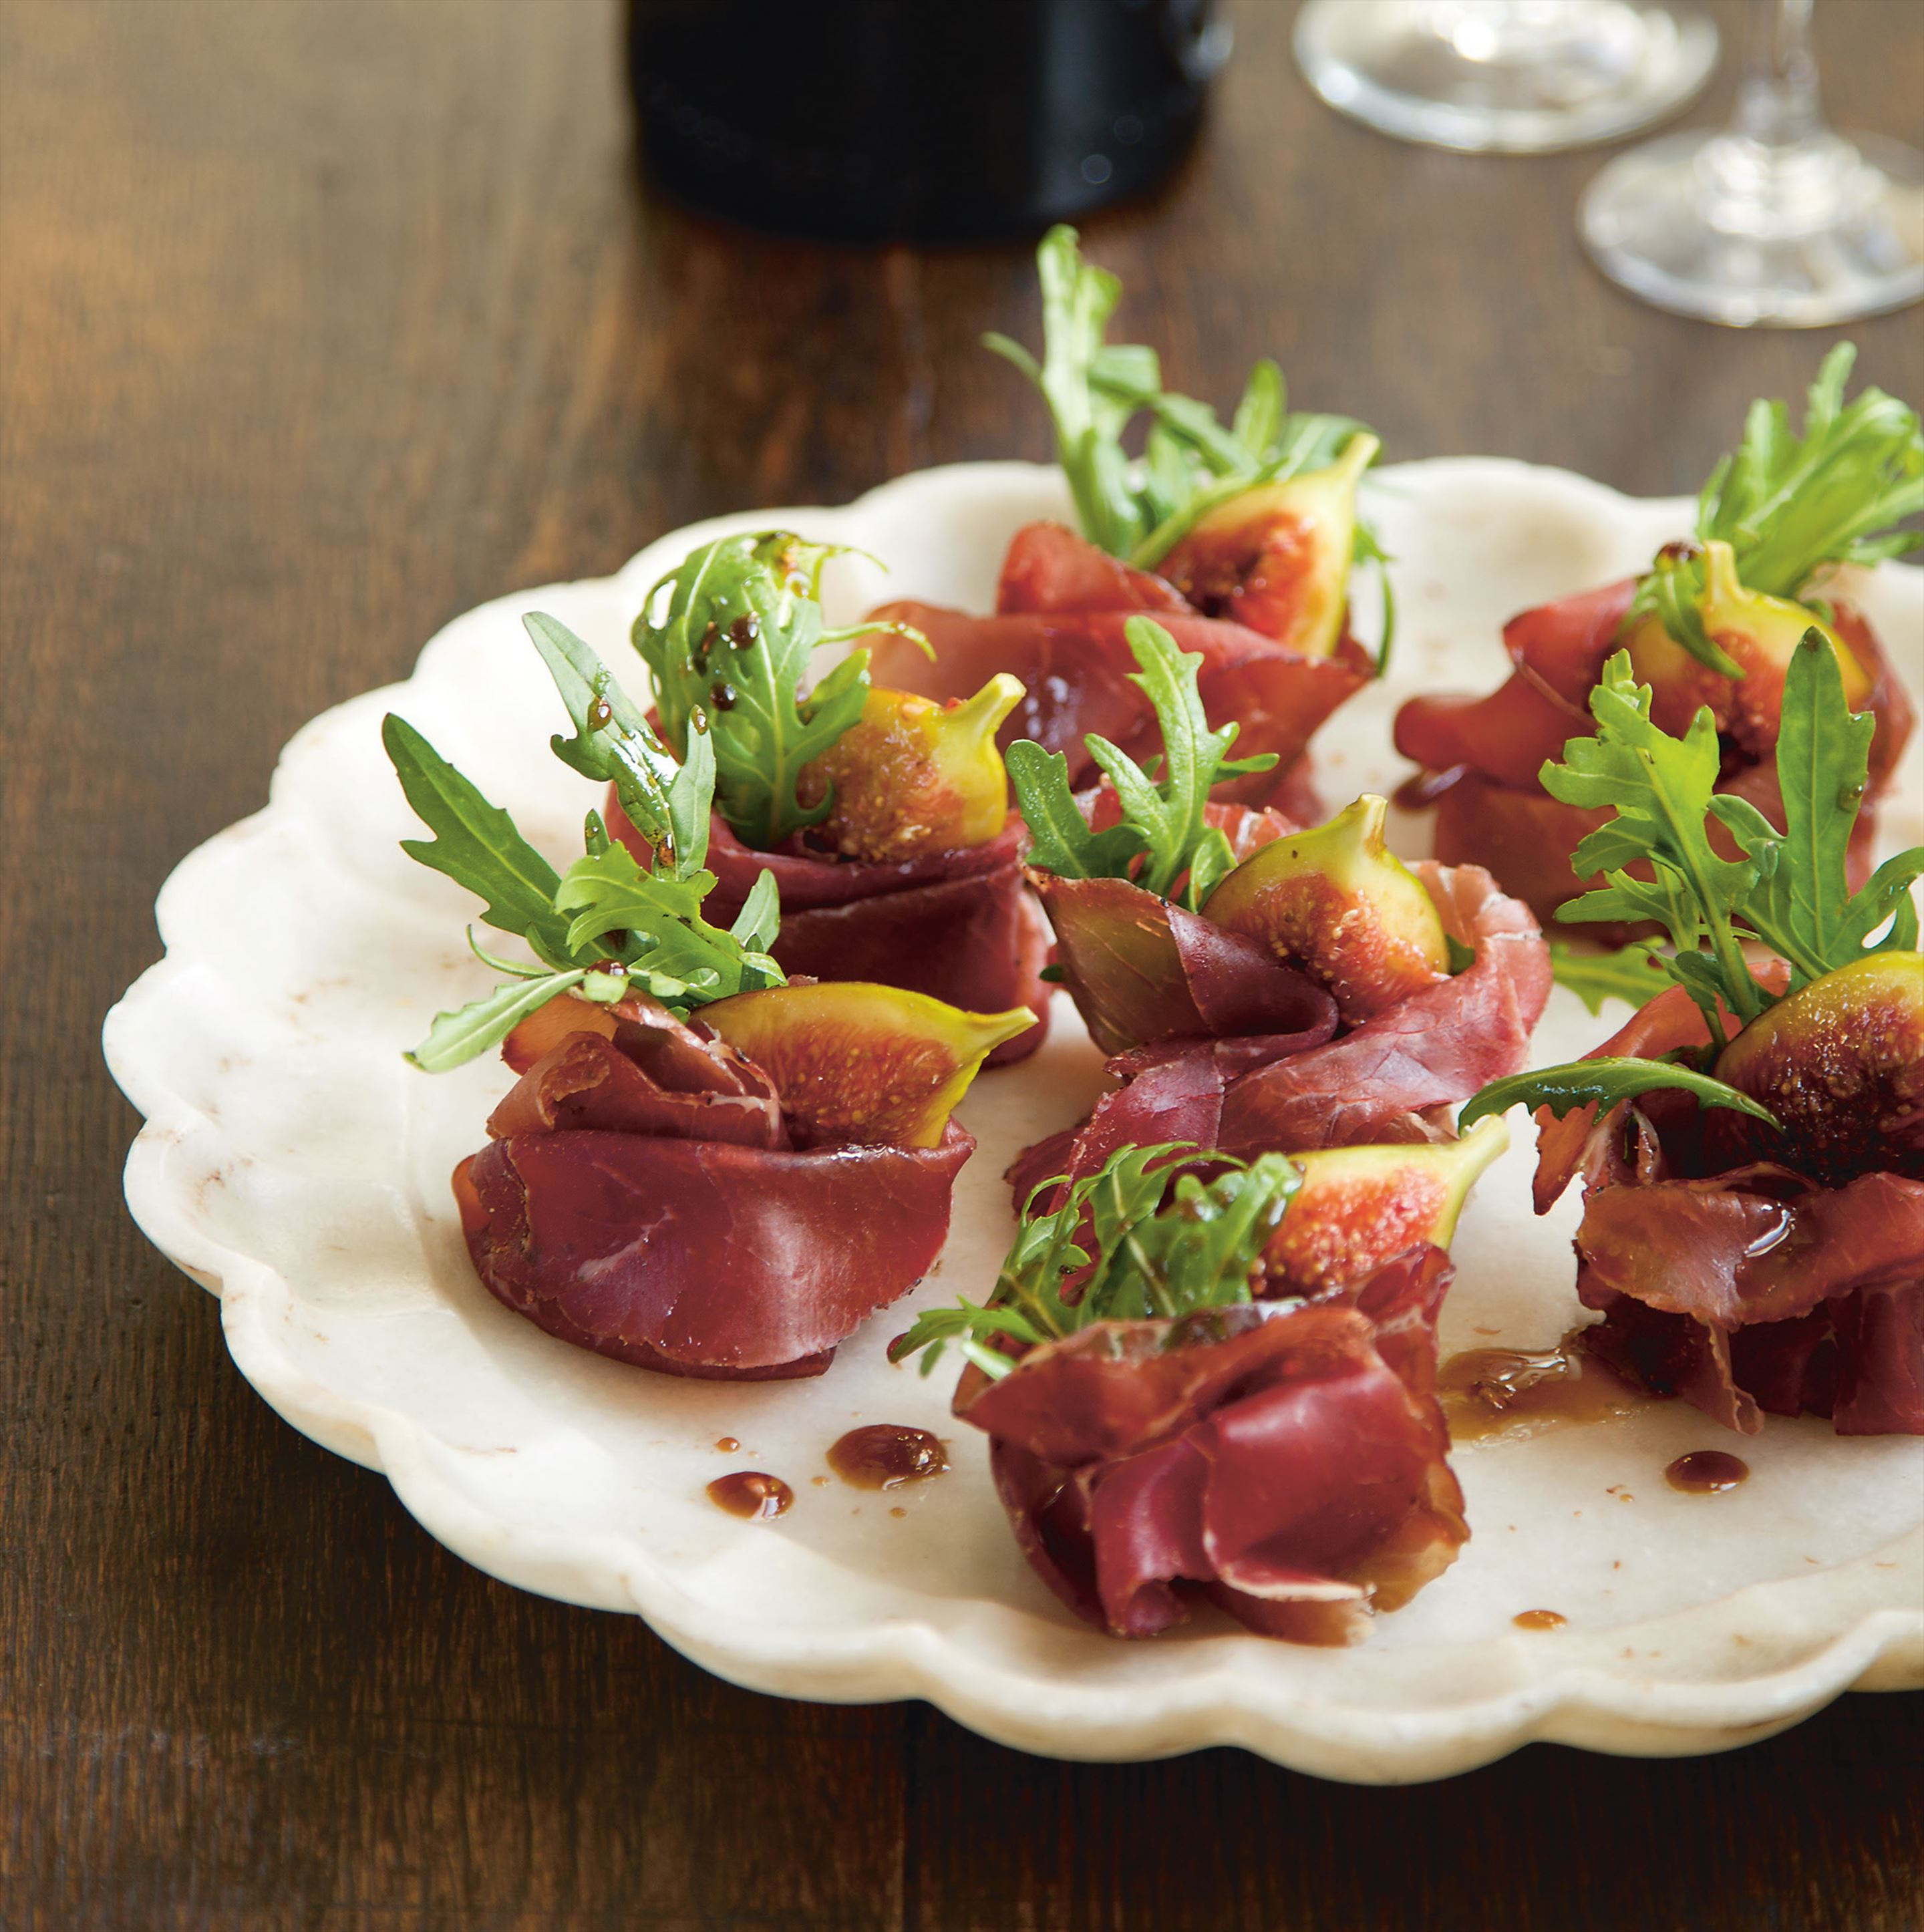 Truffled figs with bresaola and rocket